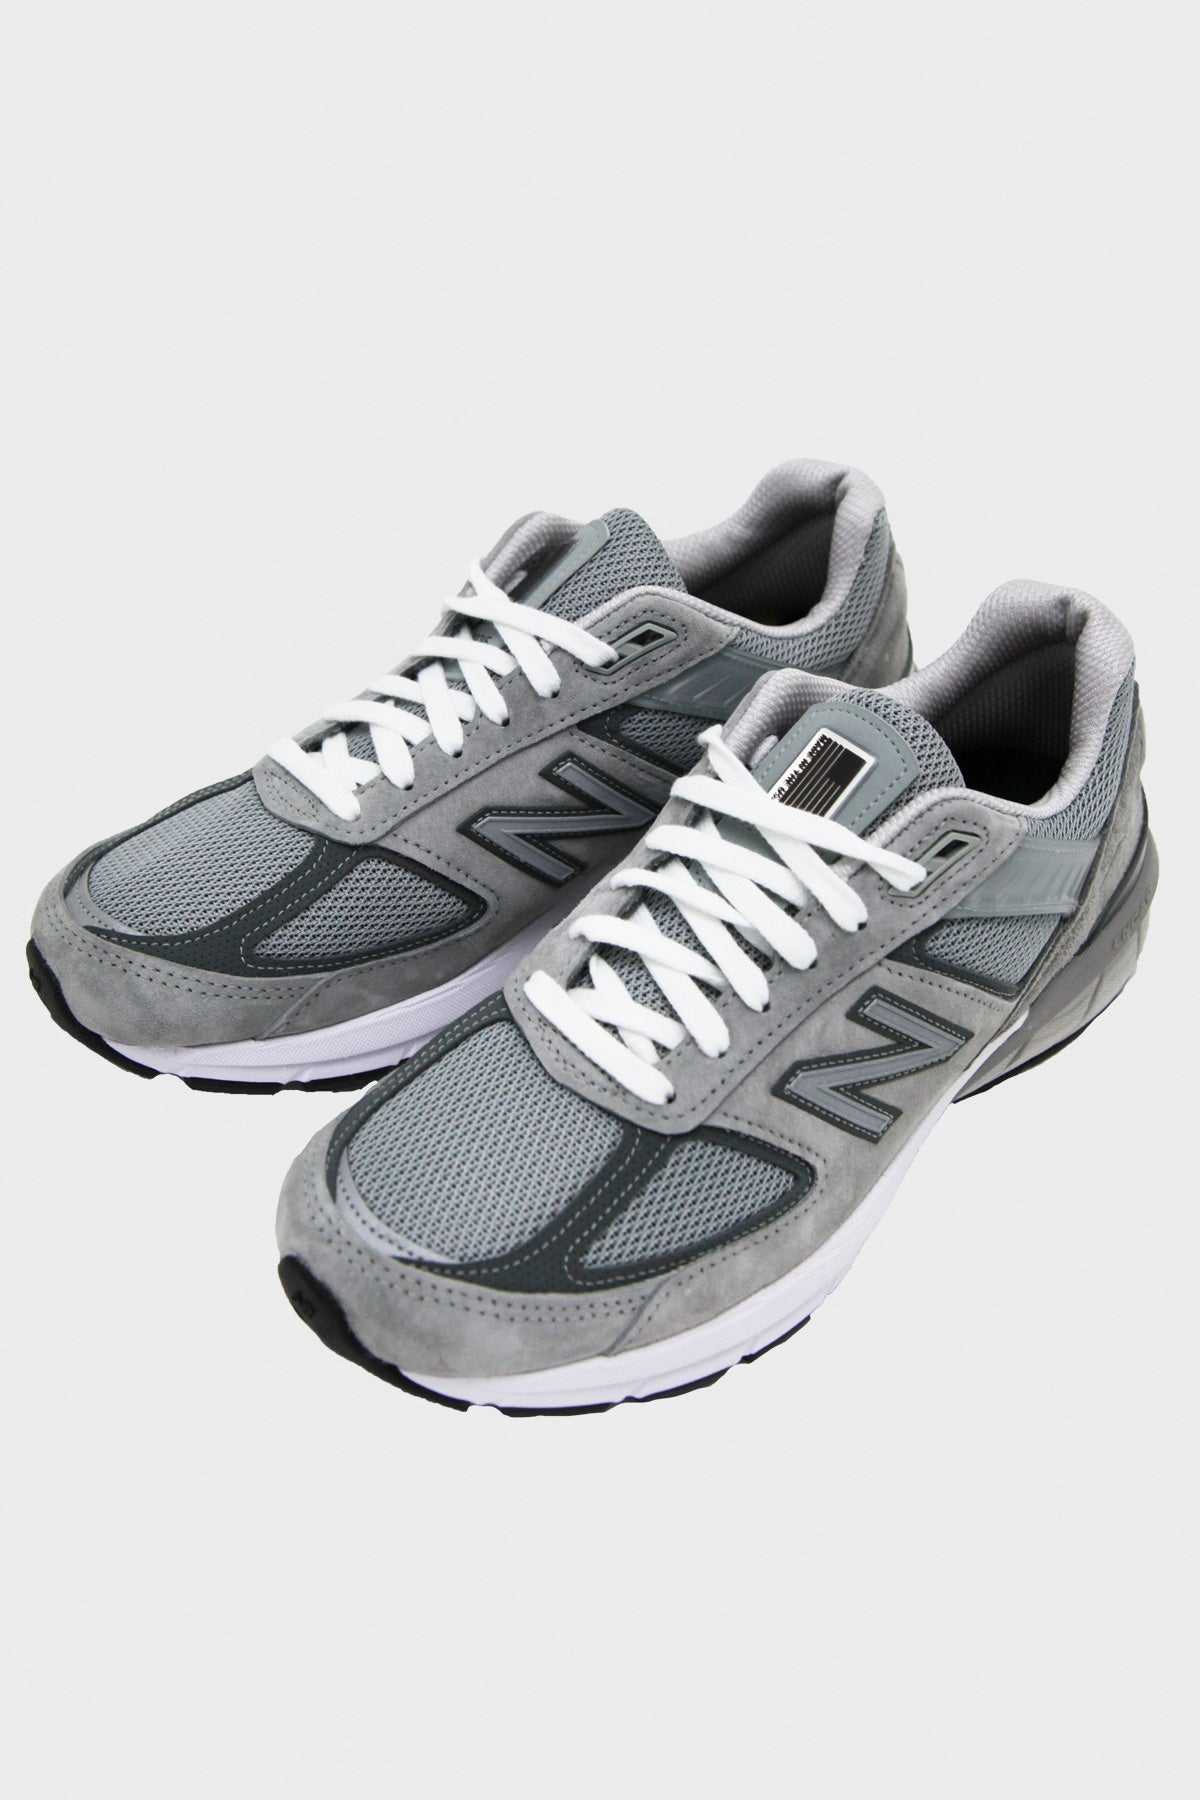 New Balance - M990GL5 - V5 - Grey/Castlerock - Canoe Club